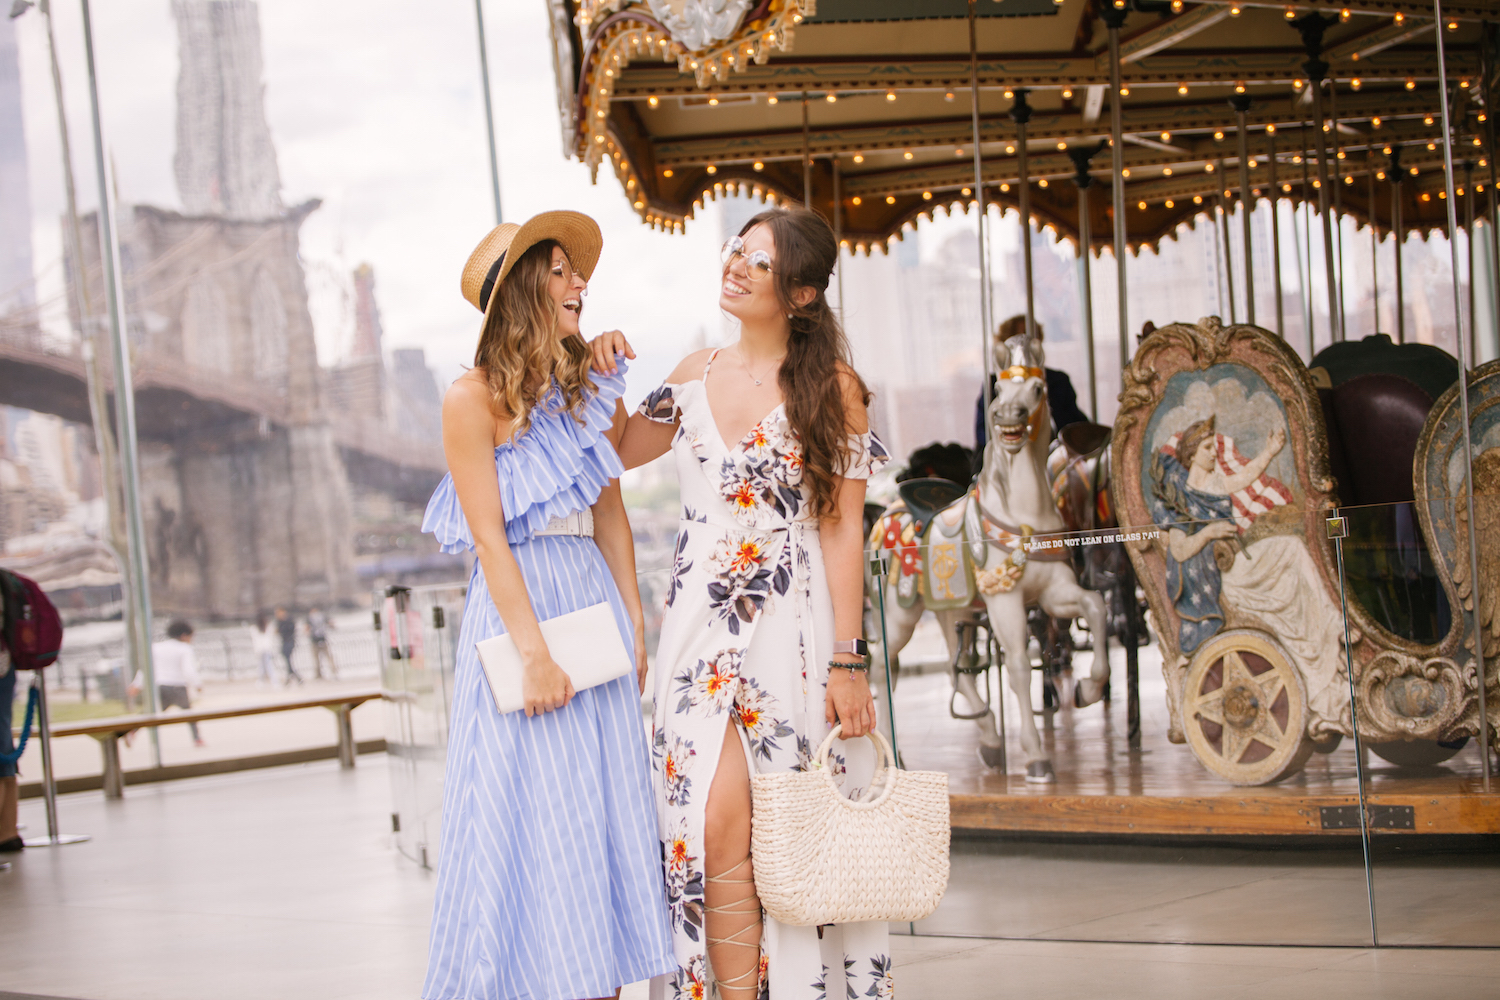 shein-collaboration-allbuenothings-sheinside-summer-dresses-nyc-blogger-bff